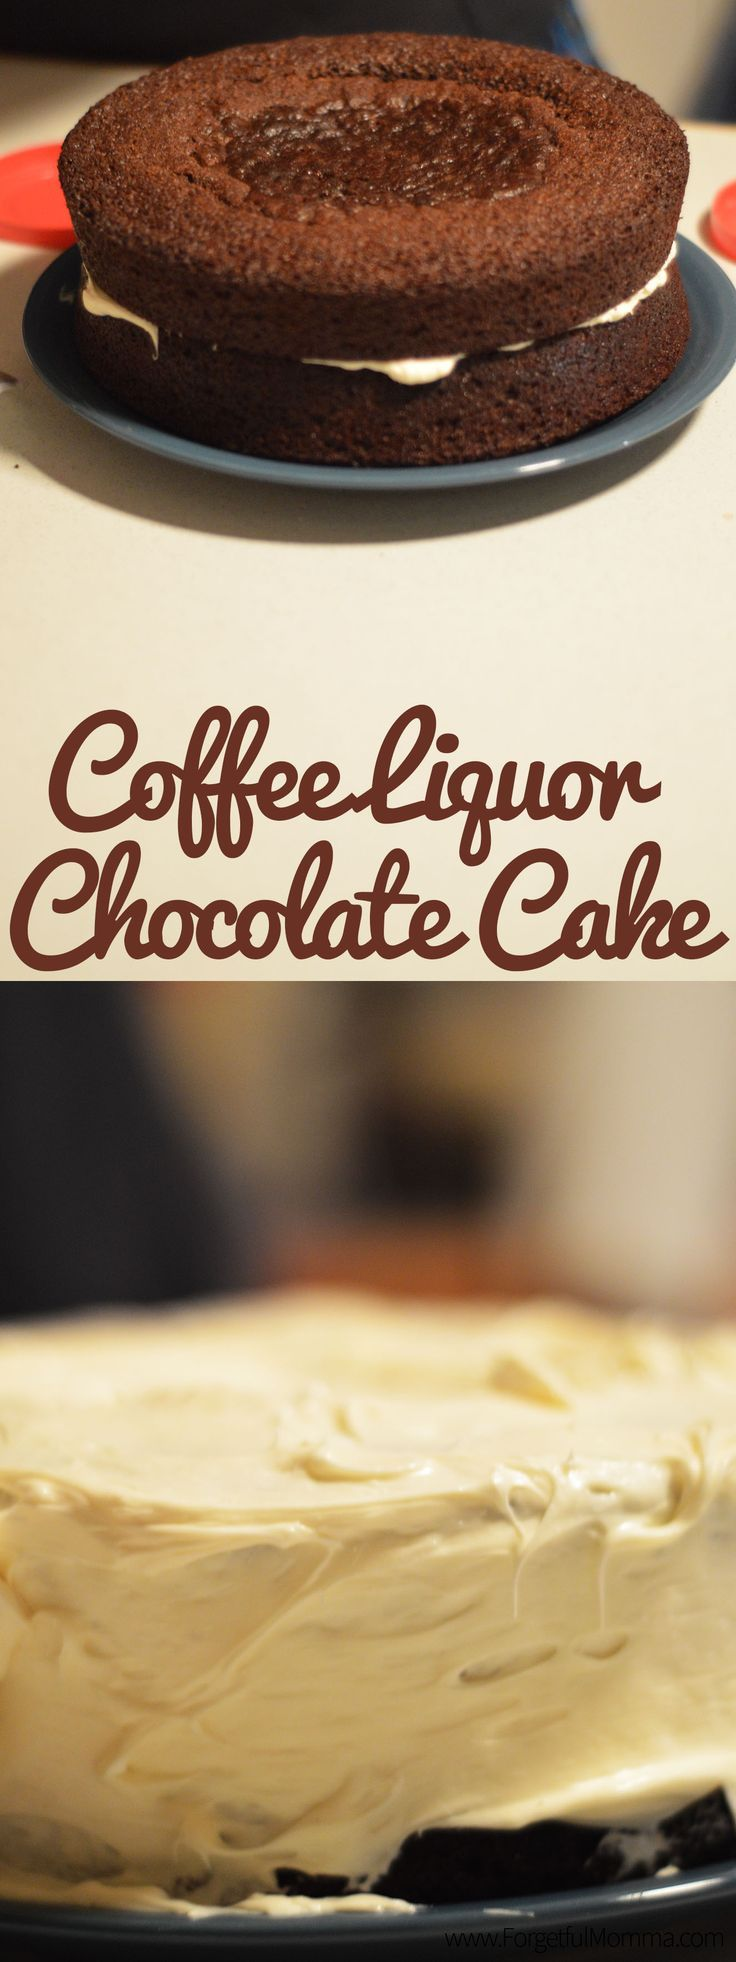 Tasty Tuesday: Coffee Liquor Chocolate Cake Day | Recipe ...